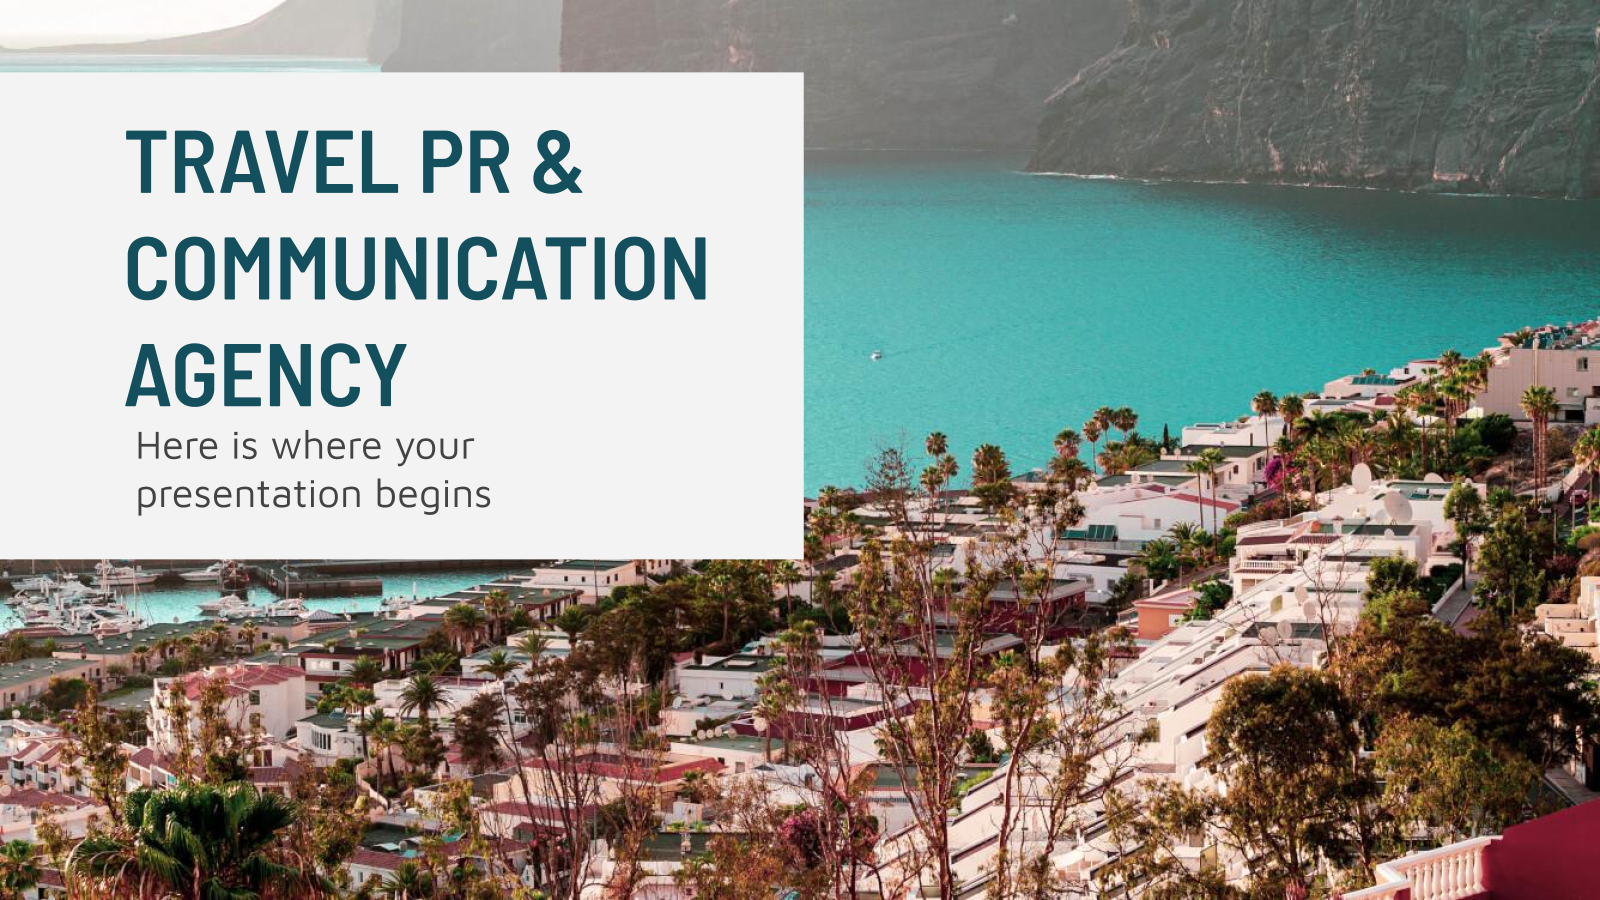 Travel PR & Communication Agency presentation template